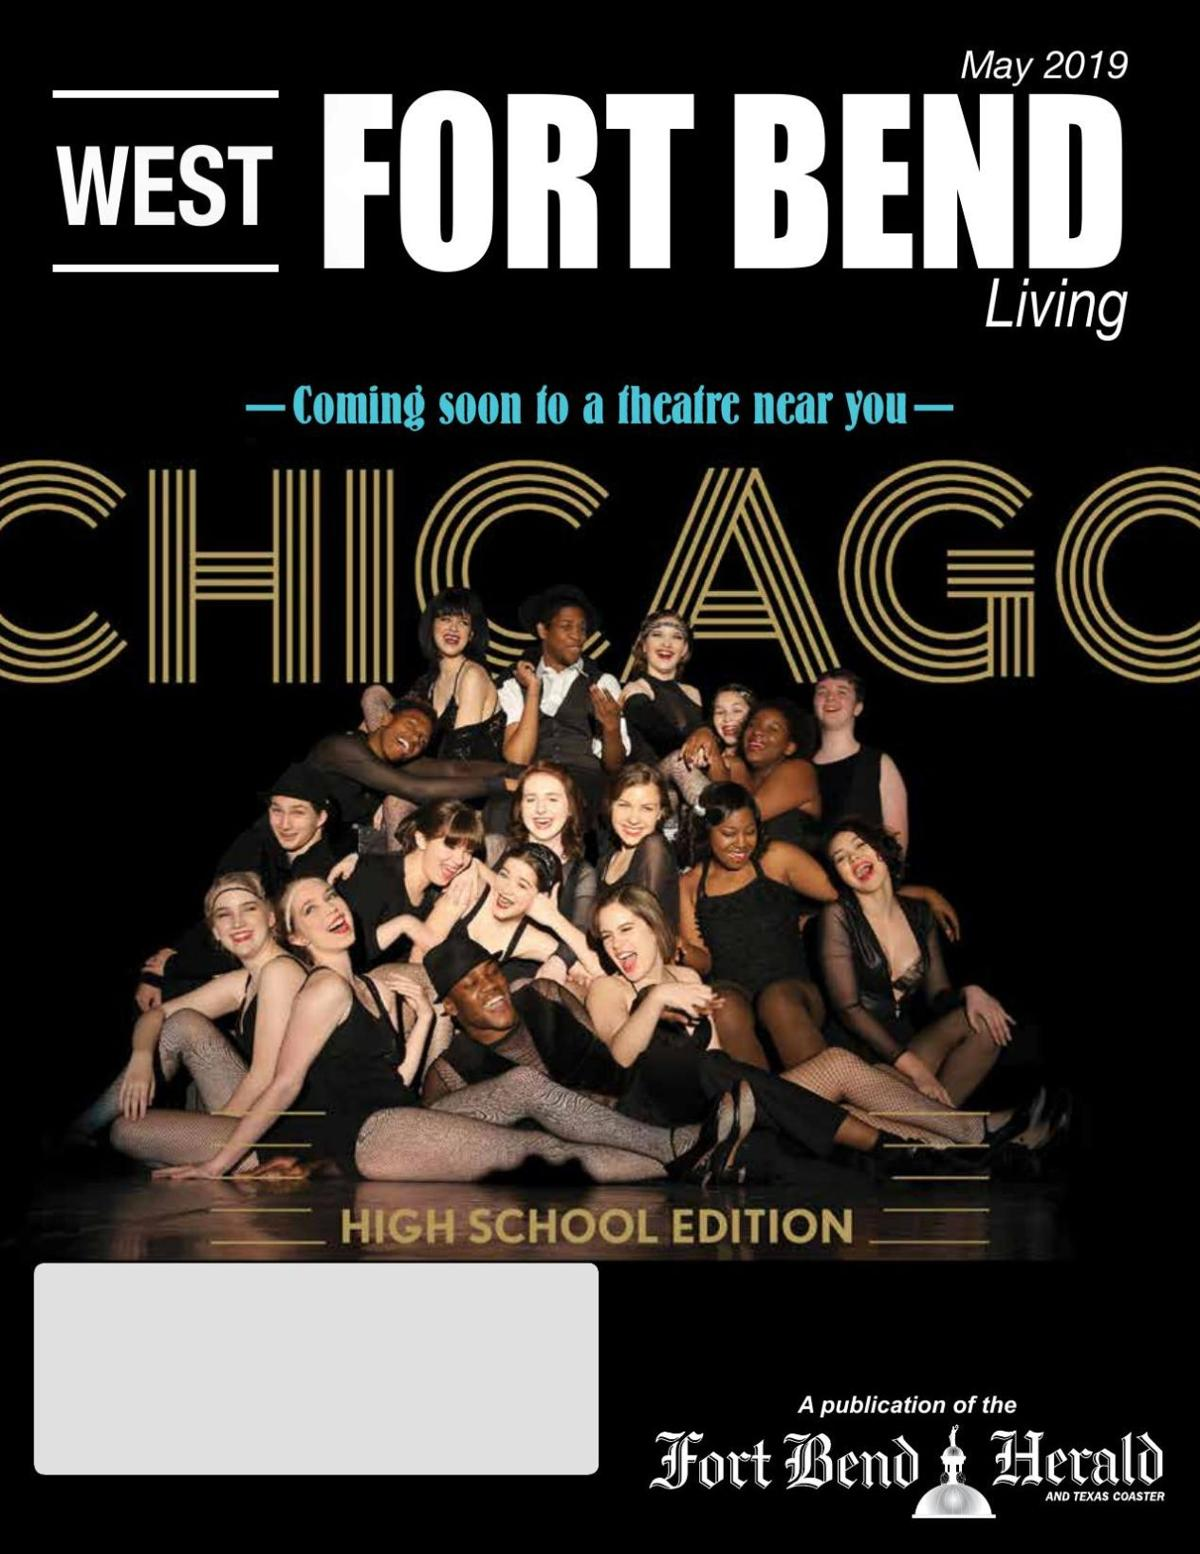 West Fort Bend Living: May 2019